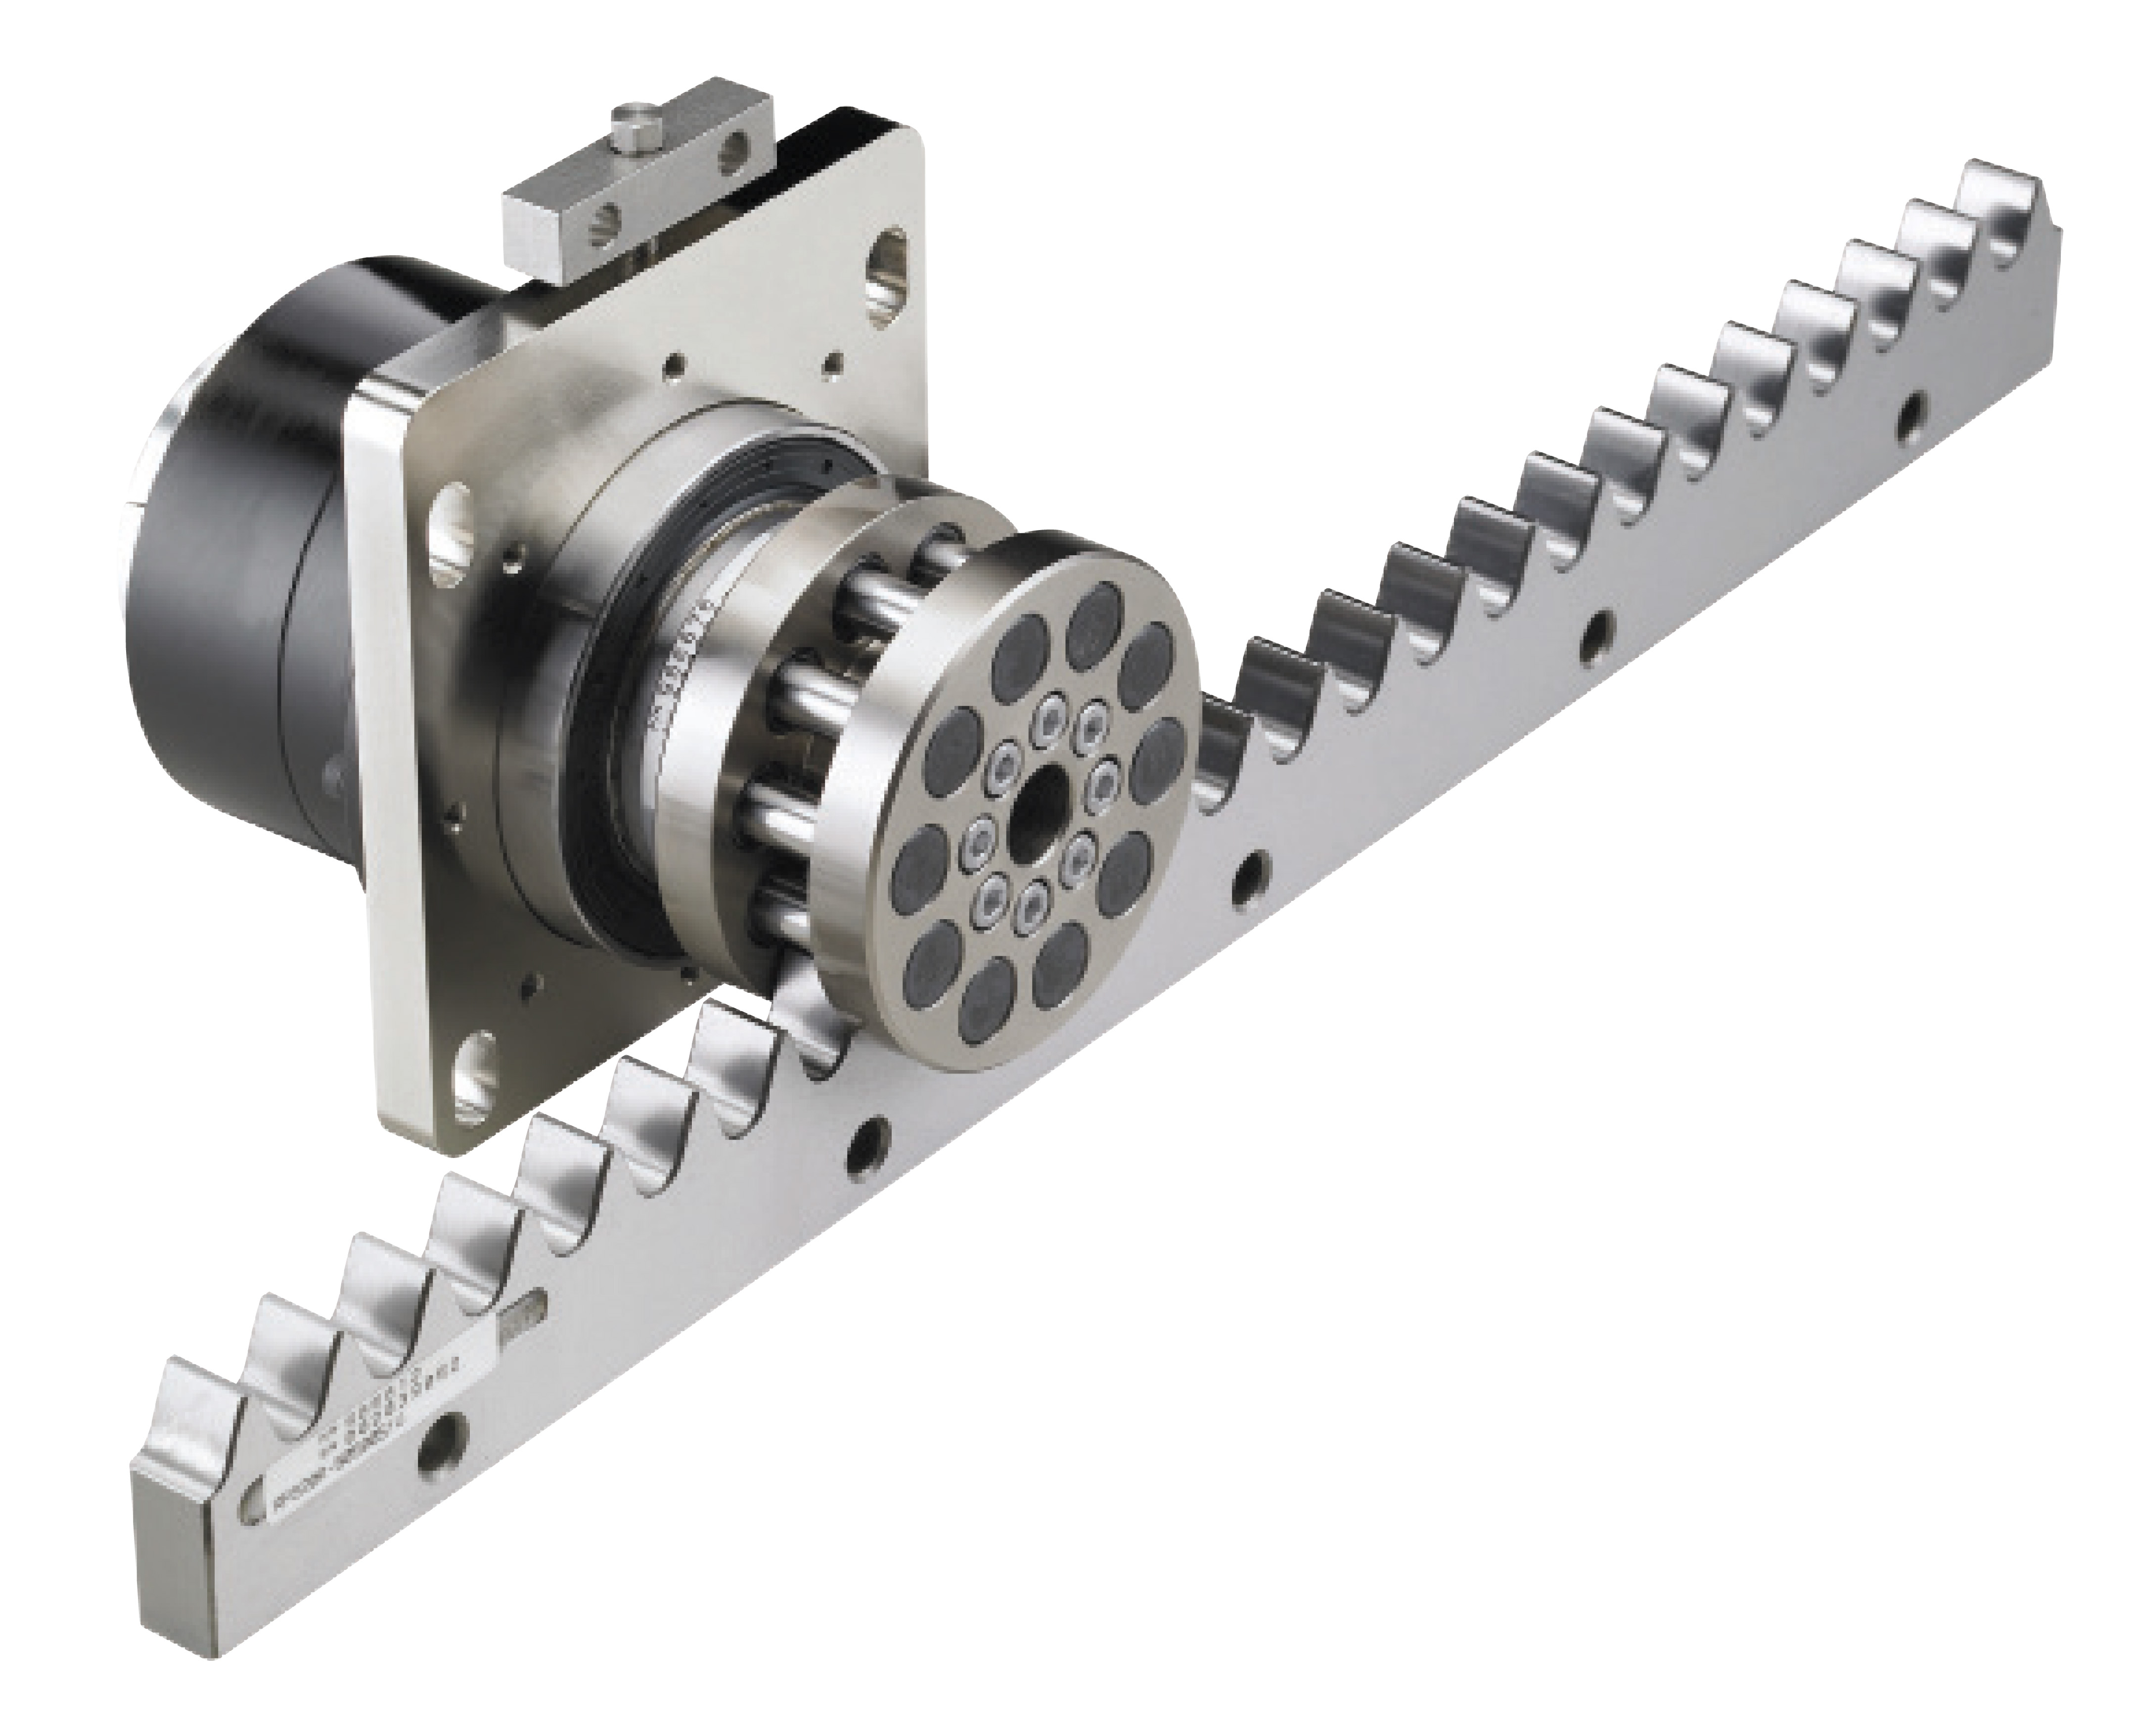 Picking The Right Linear Positioning Device Design